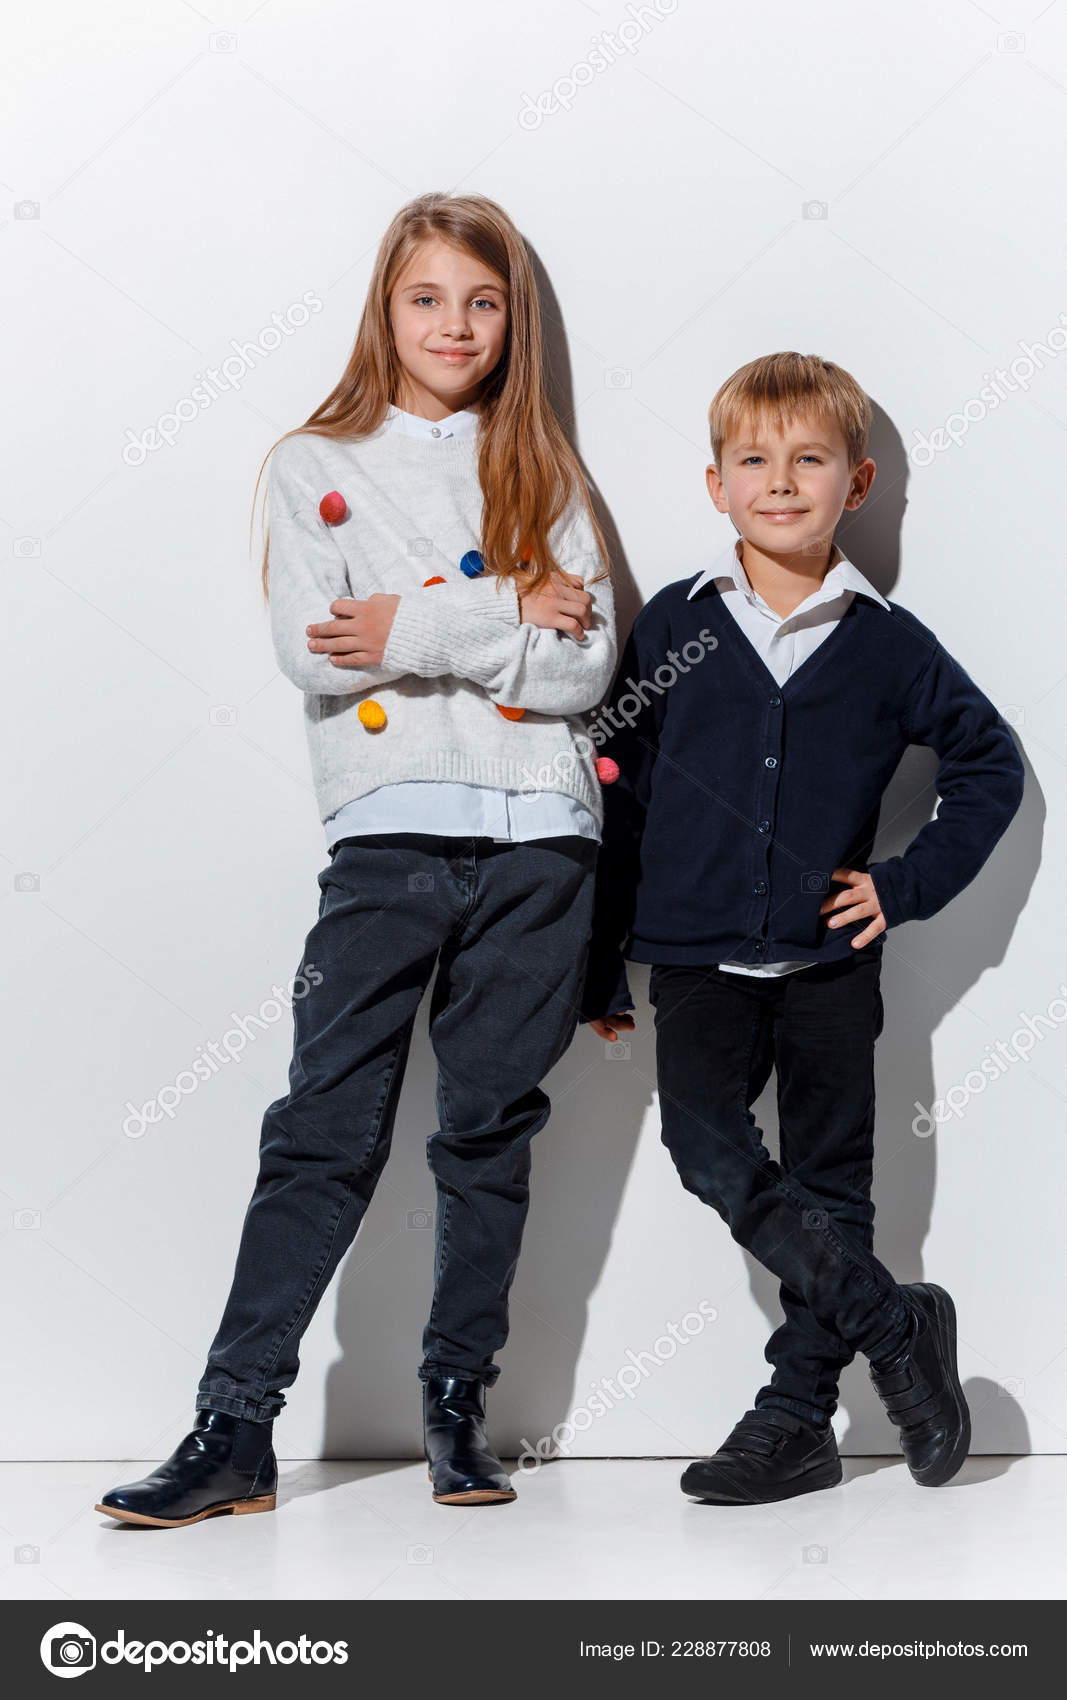 cd274b1c5 The portrait of cute little kids boy and girl in stylish jeans clothes  looking at camera against white studio wall. Kids fashion and happy  emotions concept ...